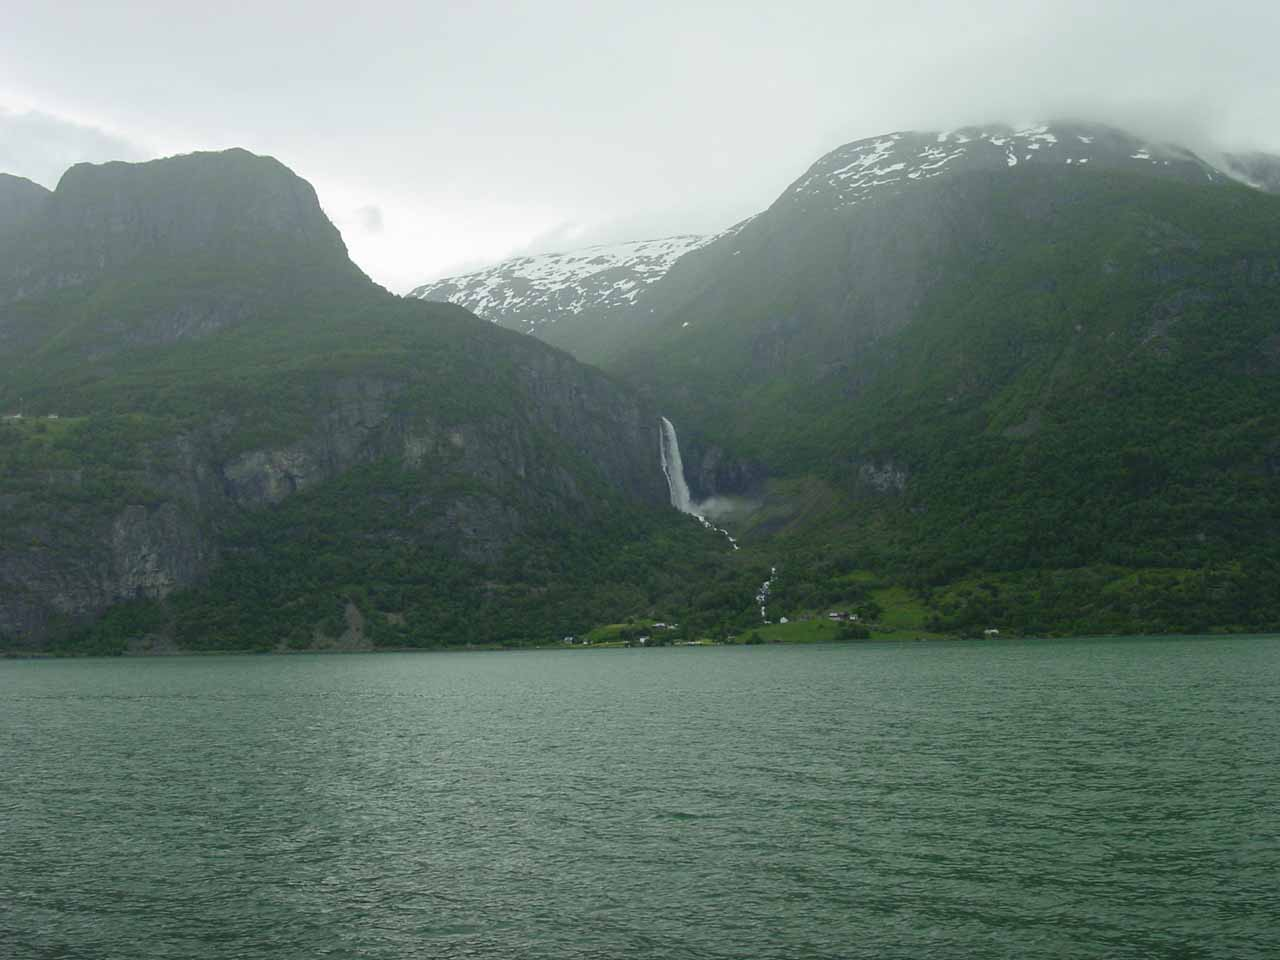 Feigefossen was the other waterfall further to the south of Mordølefossen, which had a somewhat similar resemblance